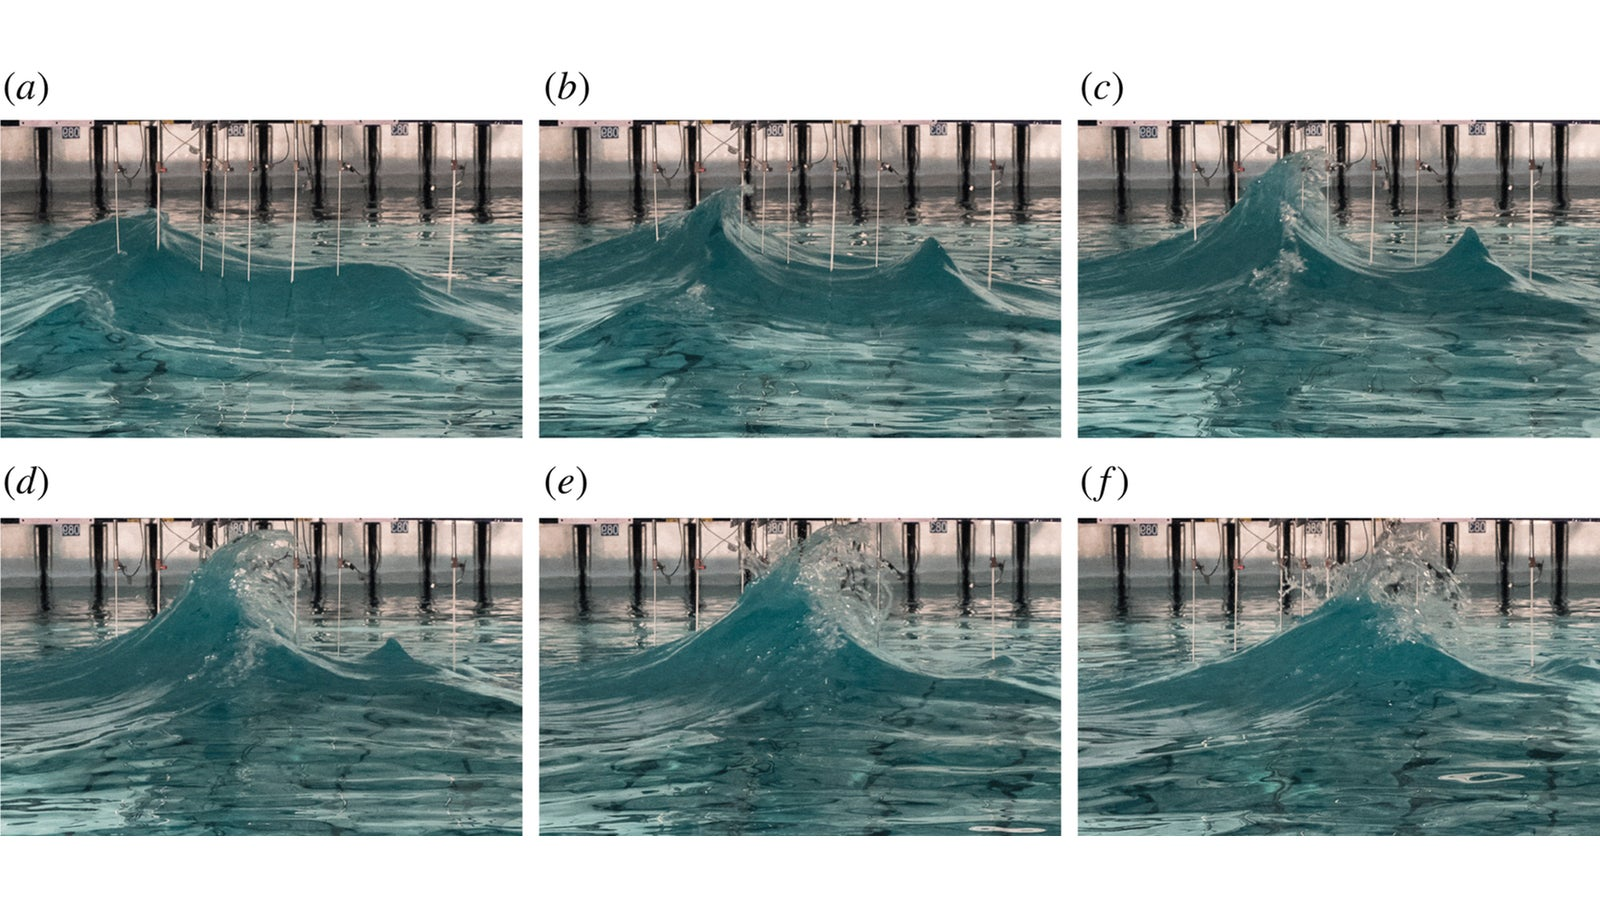 Scientists Try To Recreate Freakishly Tall 'Rogue' Waves In The Lab